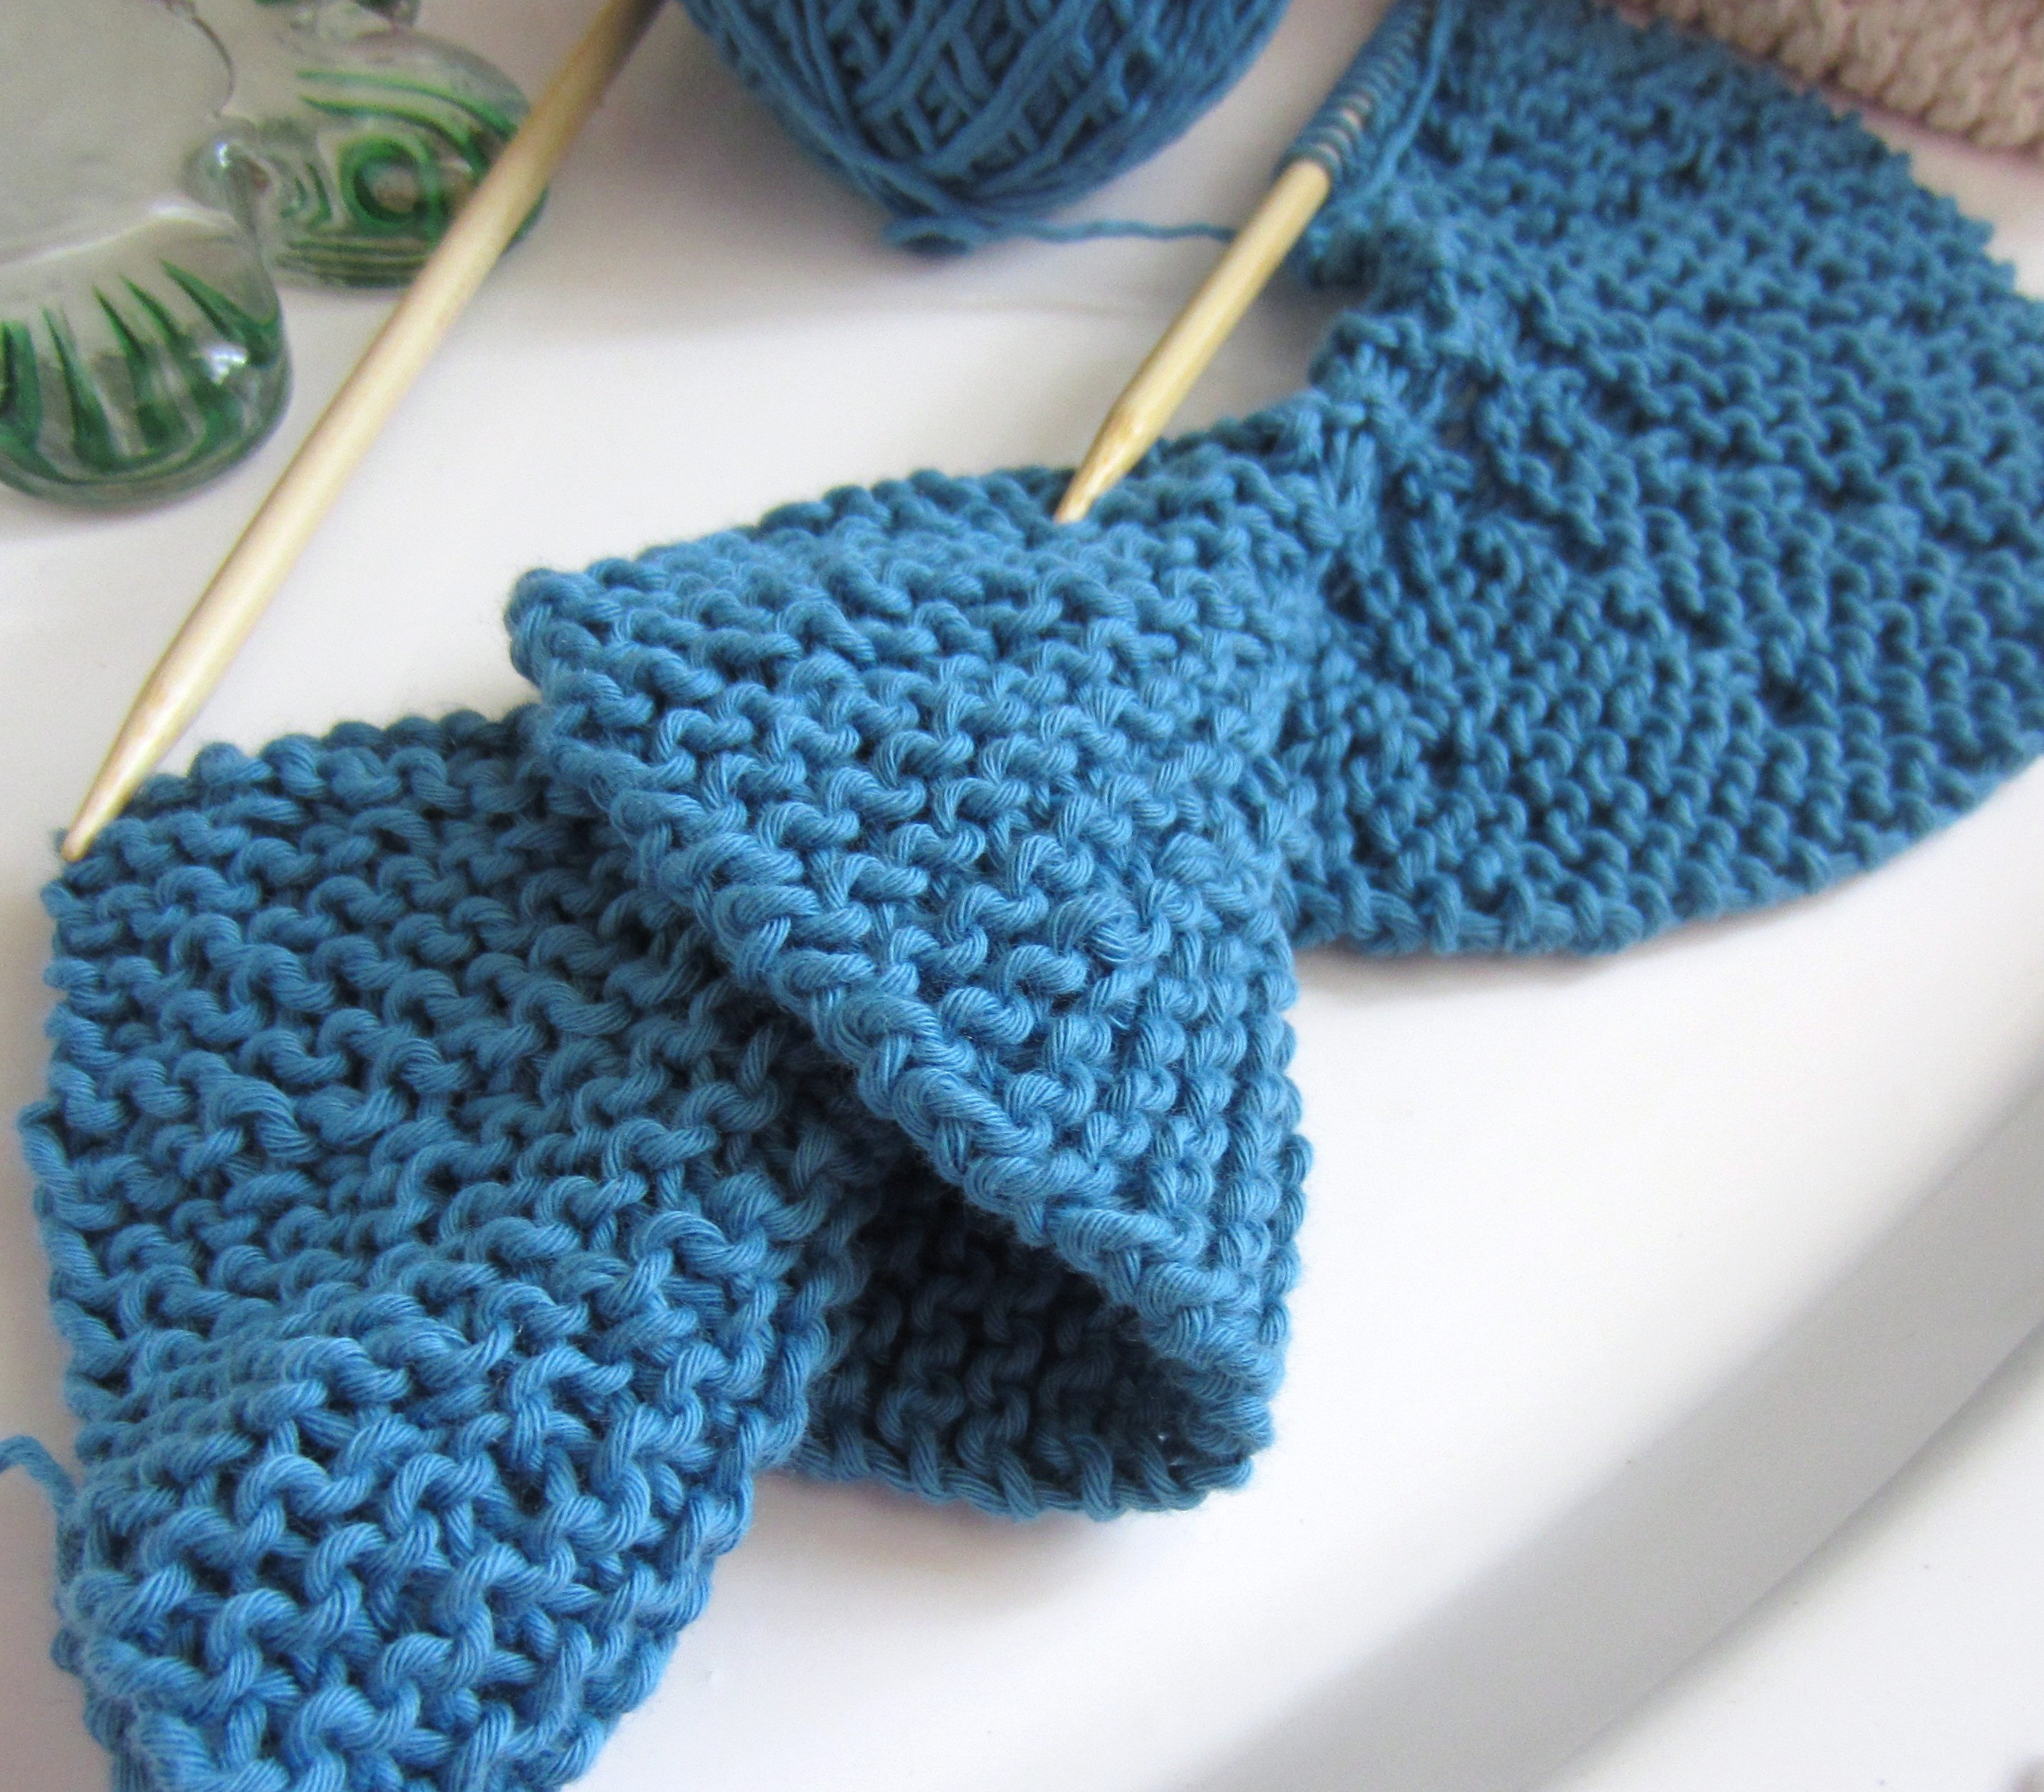 Knitting Stitches For Scarves : 301 Moved Permanently